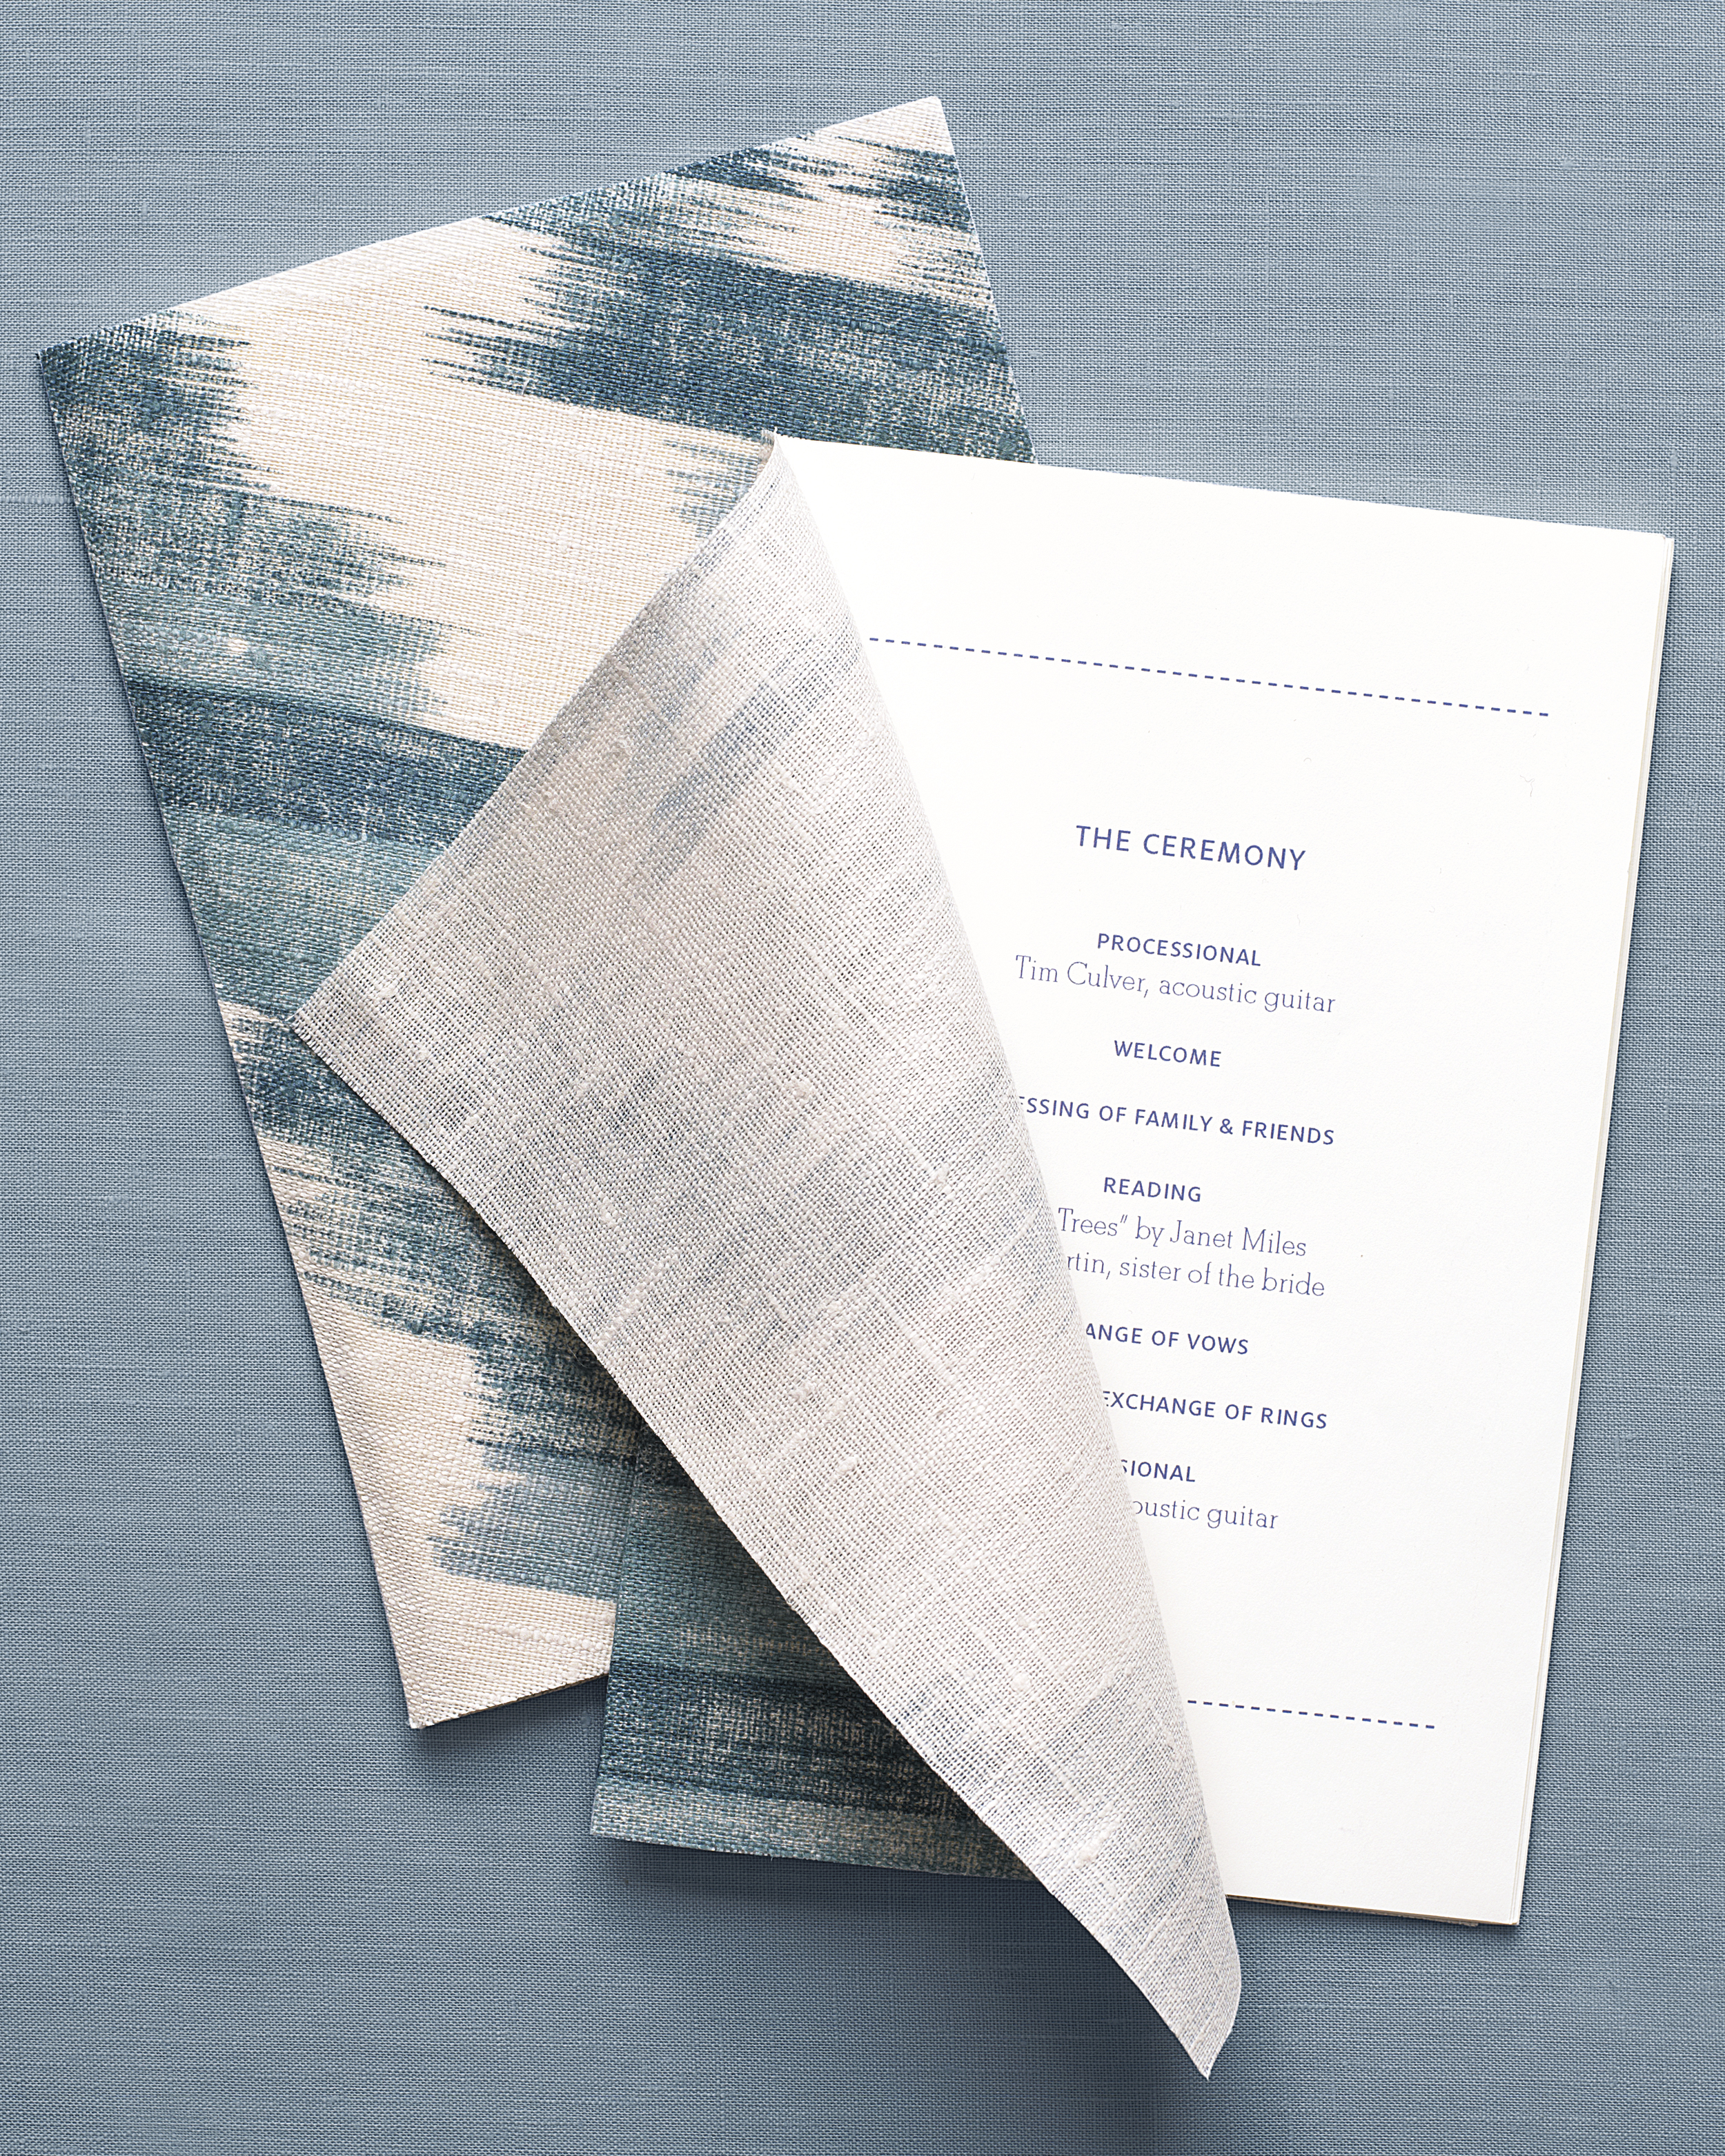 diy-wedding-ceremony-programs-mwd107042_stnryst17-0515.jpg